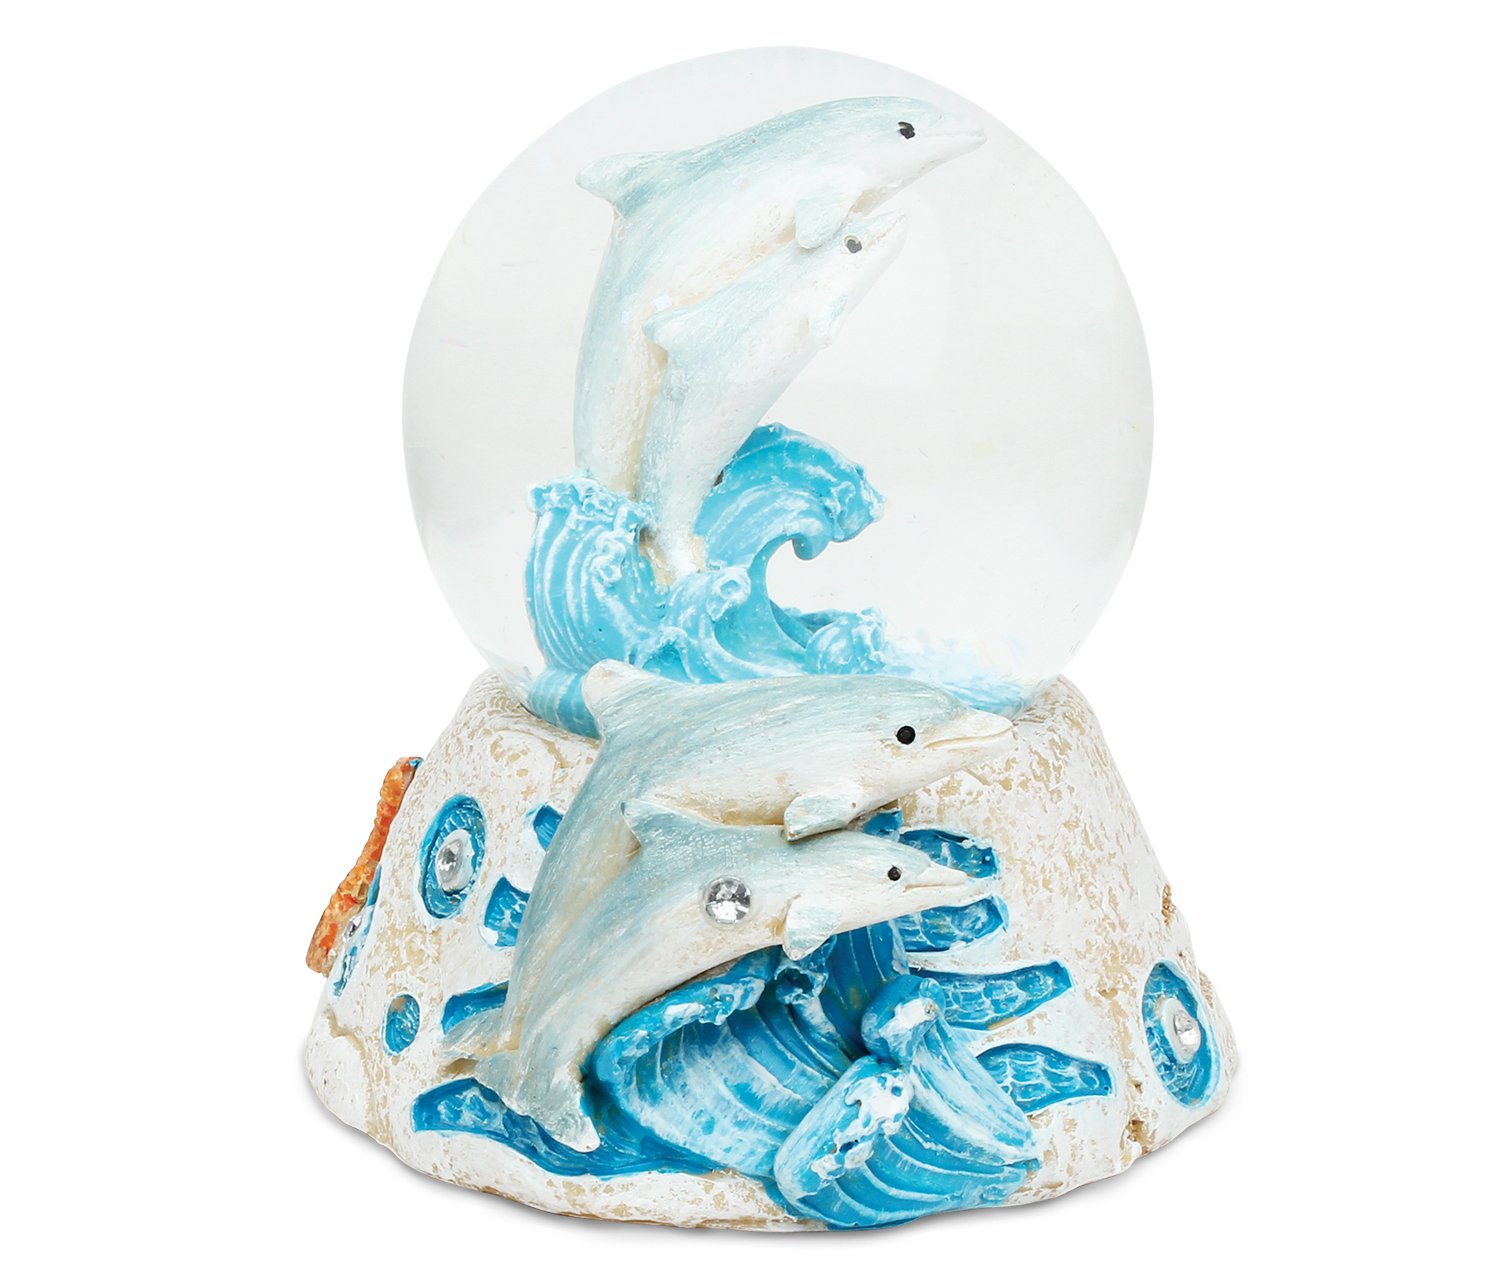 Puzzled Dolphin Resin Stone Finish Snow Globe - Sea Life Collection - 65 MM - Unique Elegant Gift and Souvenir - Item #9361